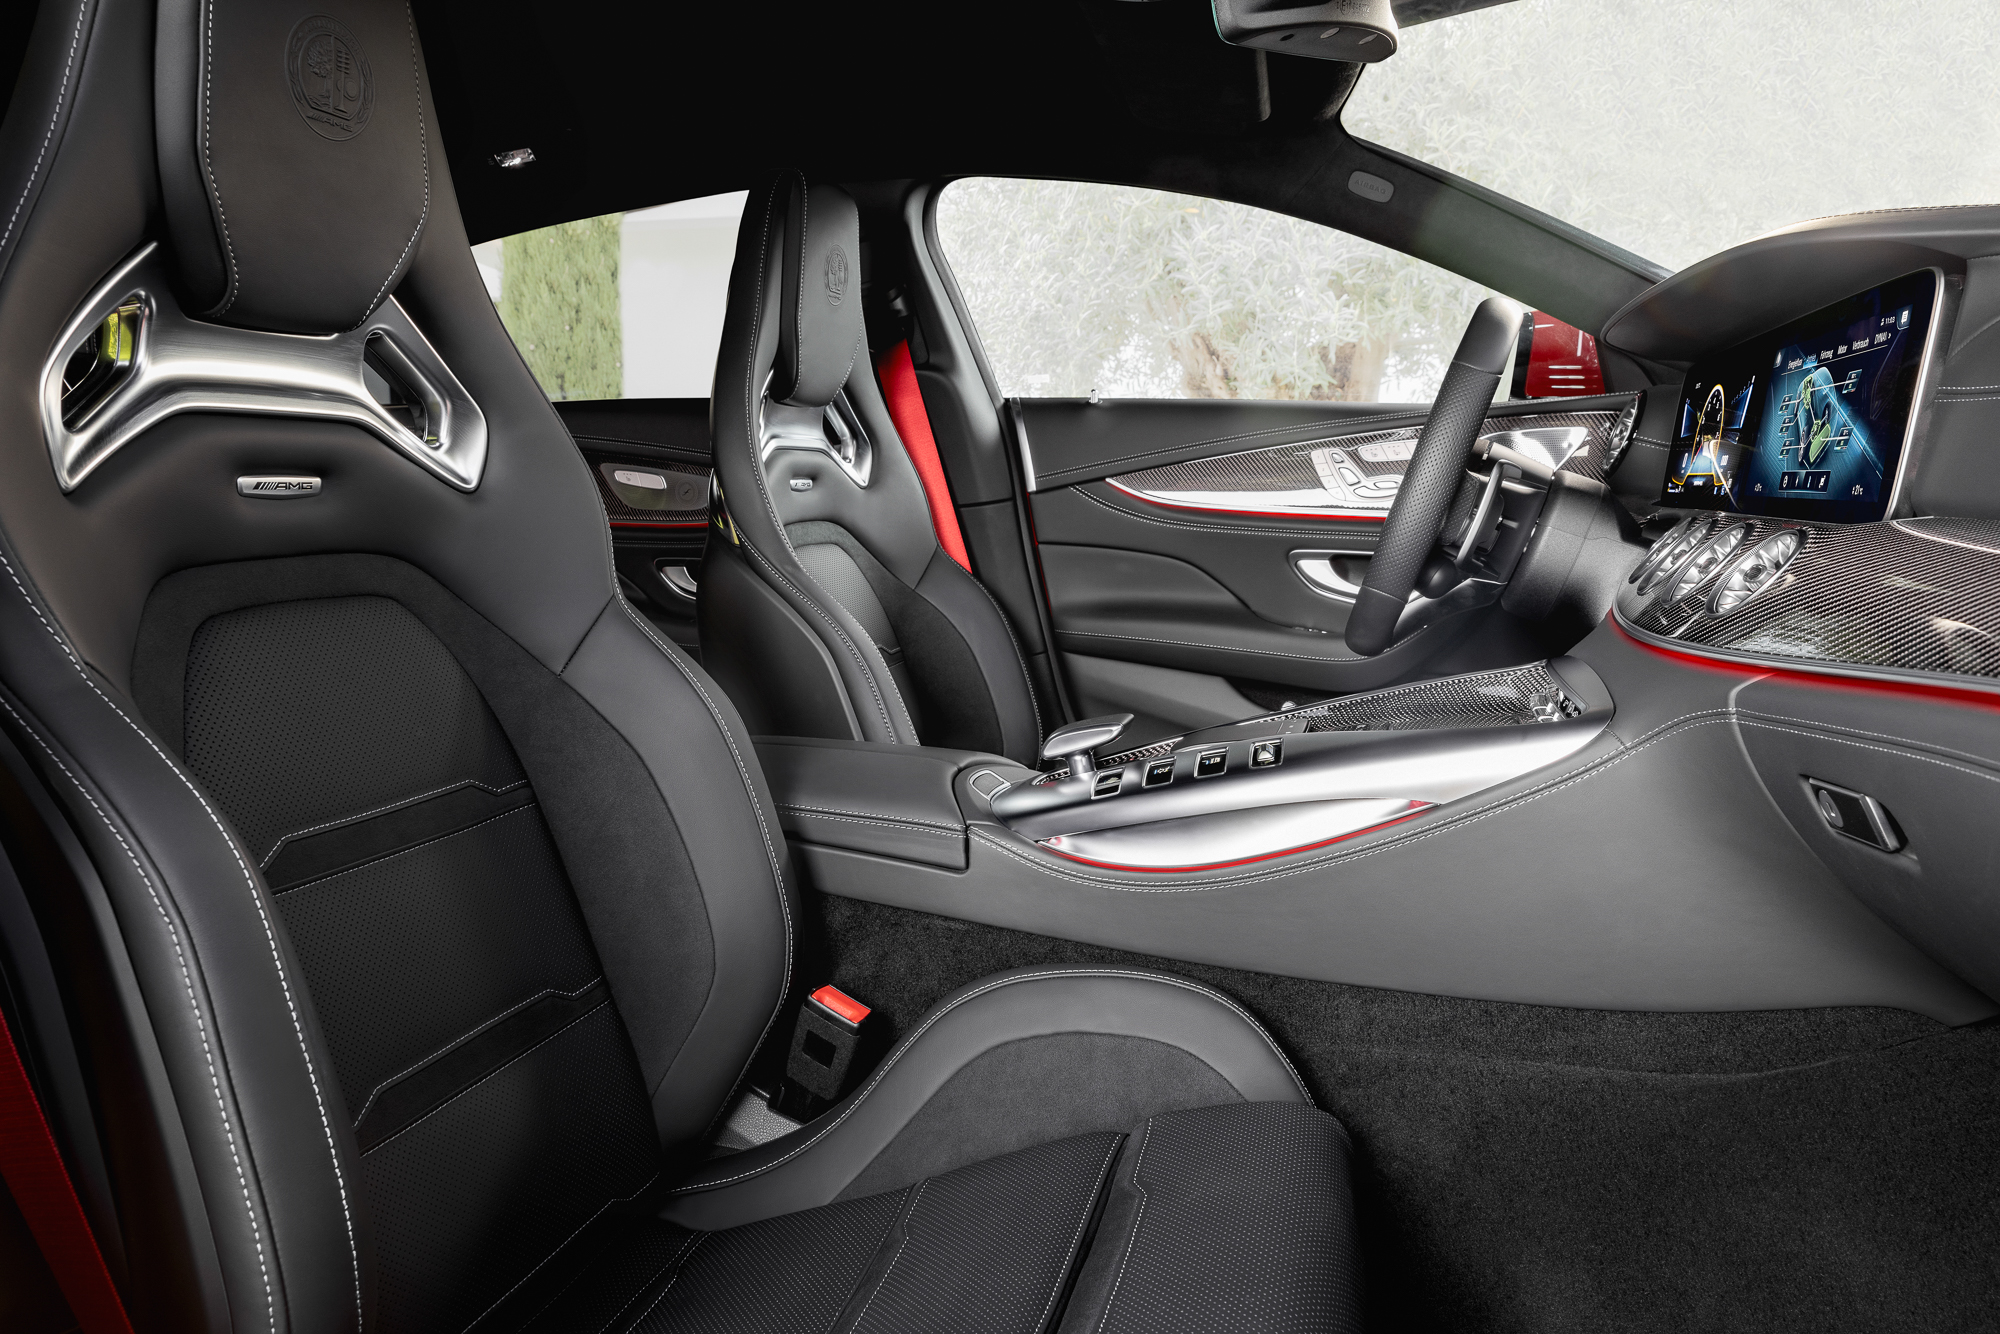 2023-Mercedes-AMG-GT-63-S-E-Performance interior side